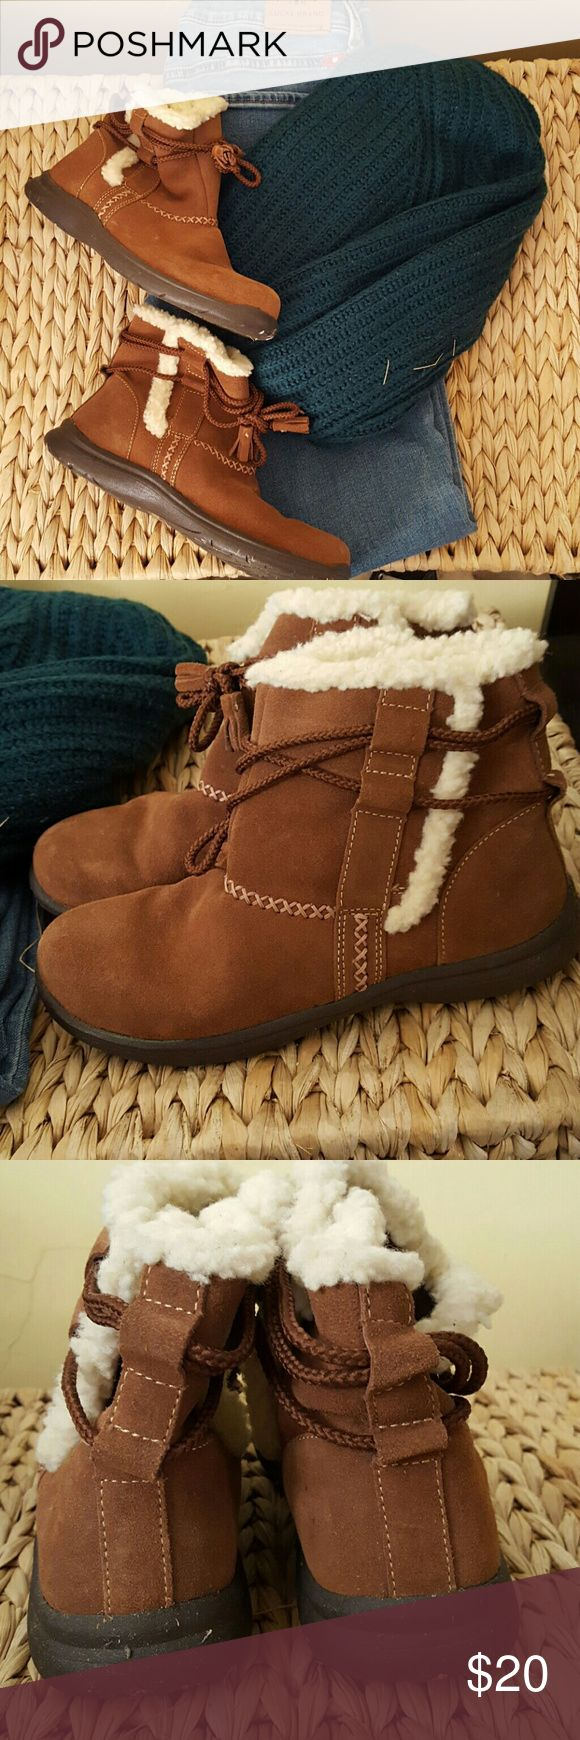 Brown suede mocassins Great condition, practically brand new. Only worn once around the house. Thick to keep feet warm through the cold winter months, great grip and water proof. Super cute too! Canyon River blues  Shoes Ankle Boots & Booties